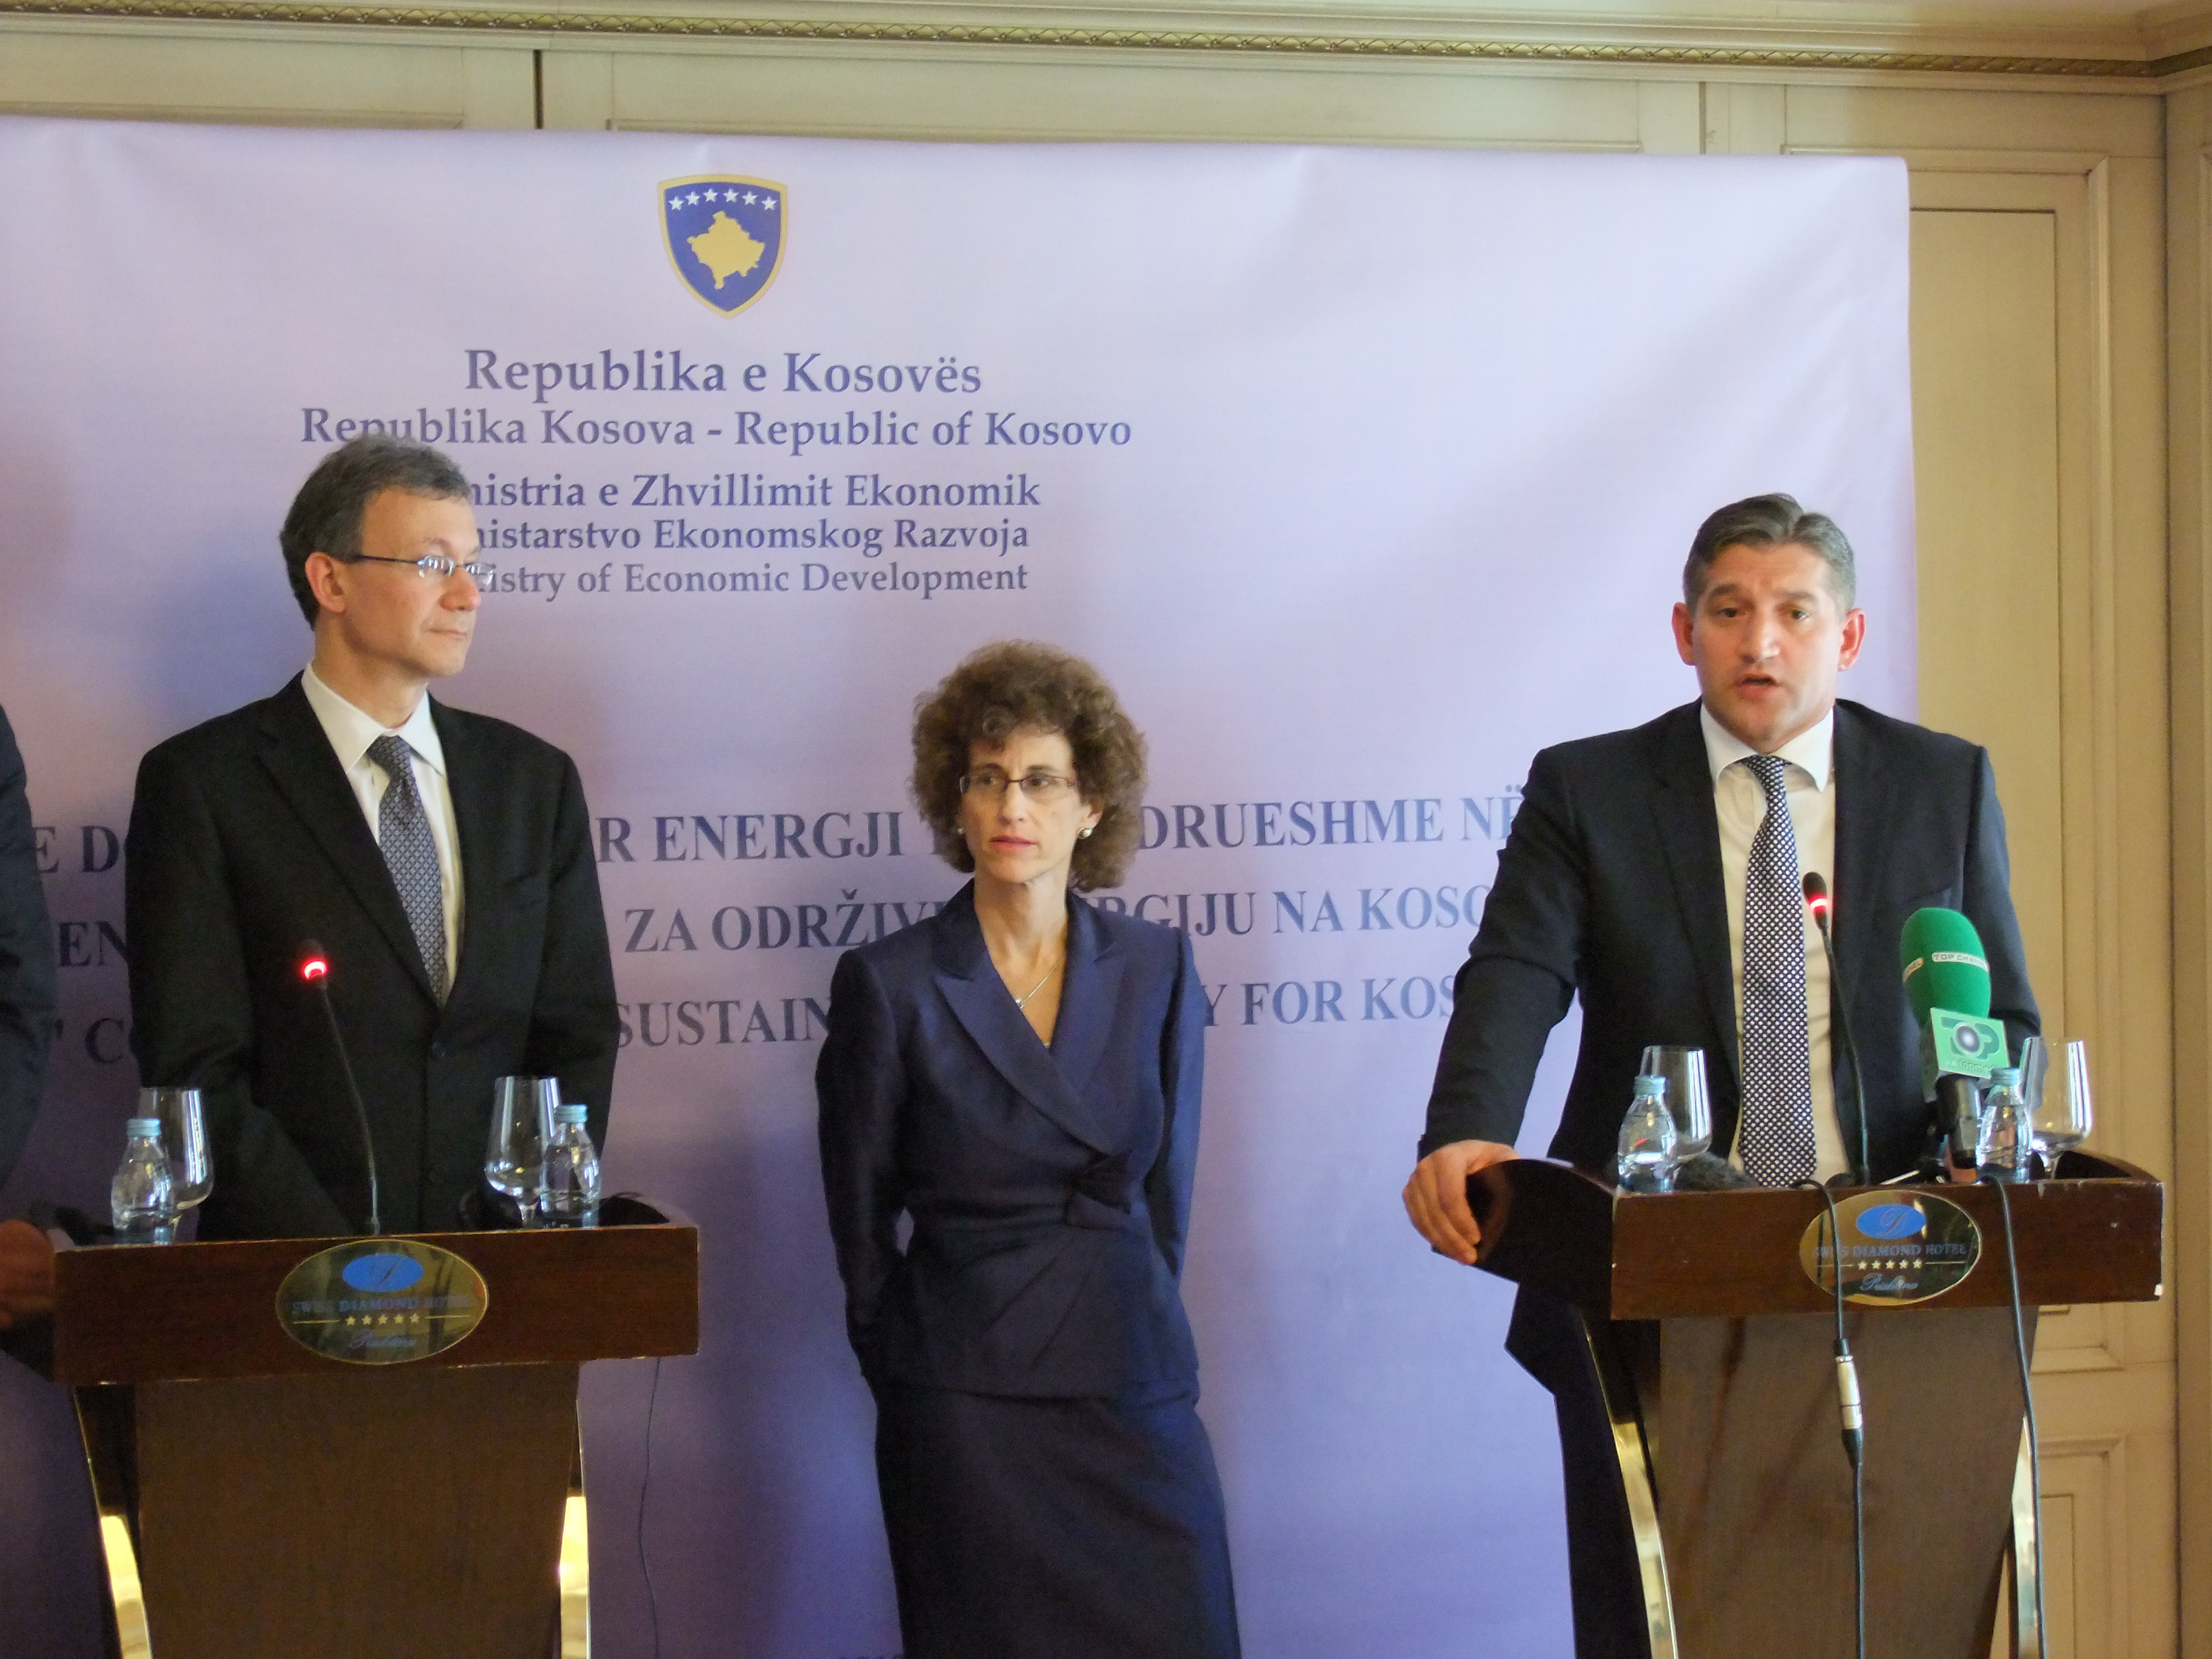 U.S. Coordinator of Assistance for Europe and Eurasia Daniel Rosenblum (left), World Bank Country Director for Southeast Europe